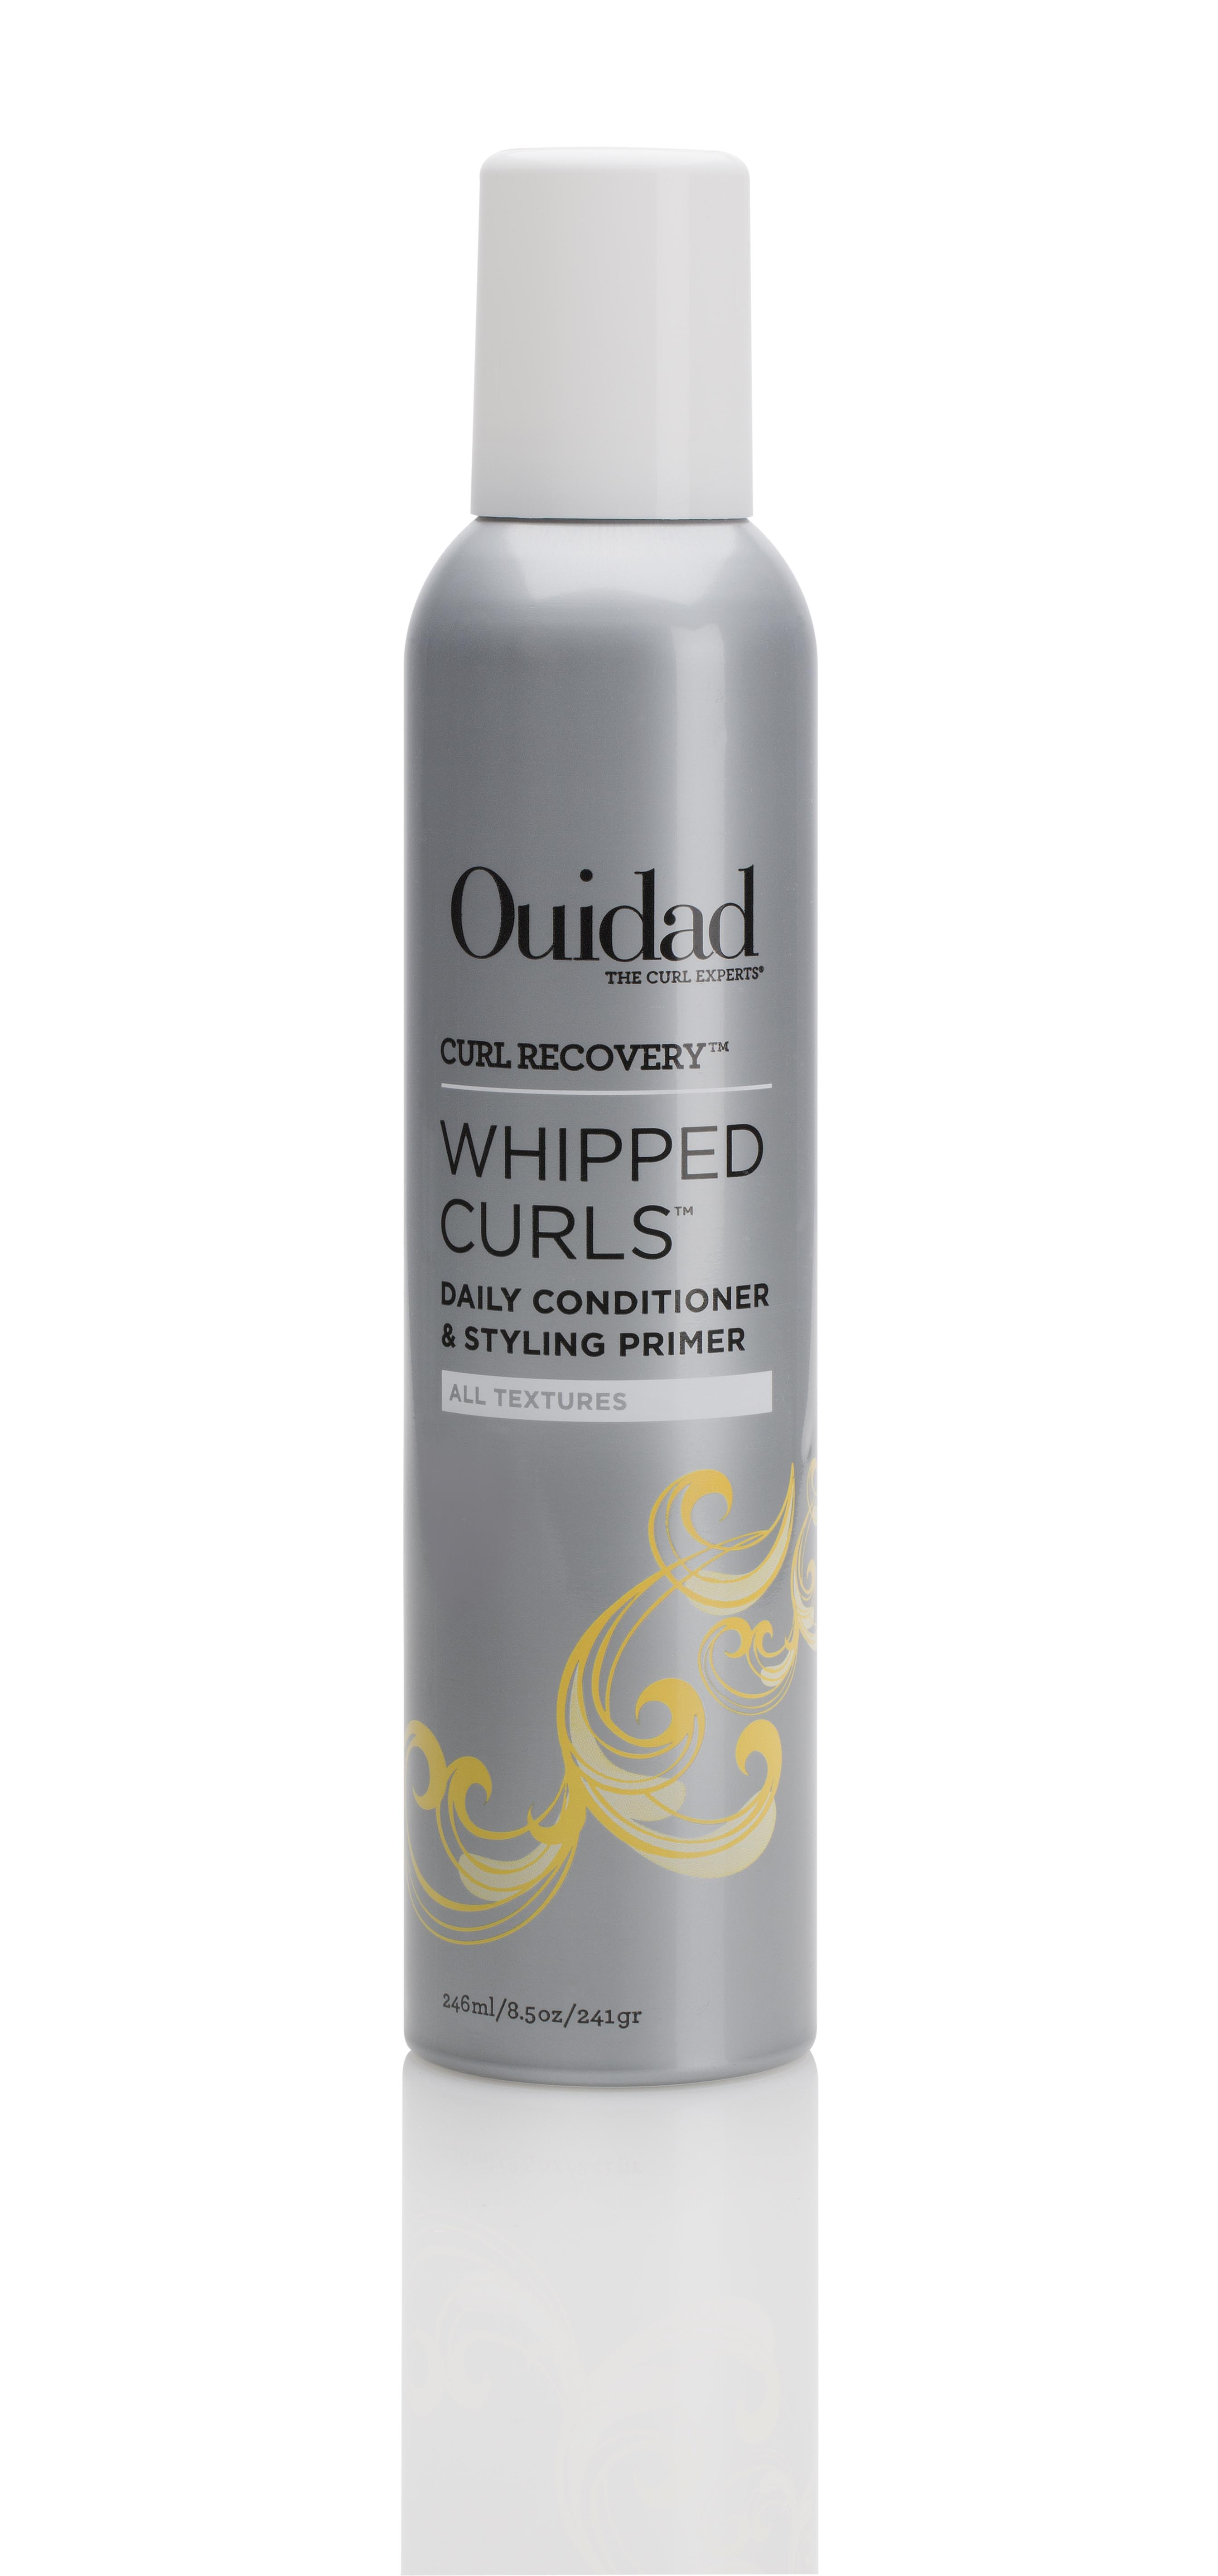 http://carolinastylemag.com/wp-content/uploads/2013/02/Ouidad-Whipped-Curls.jpg